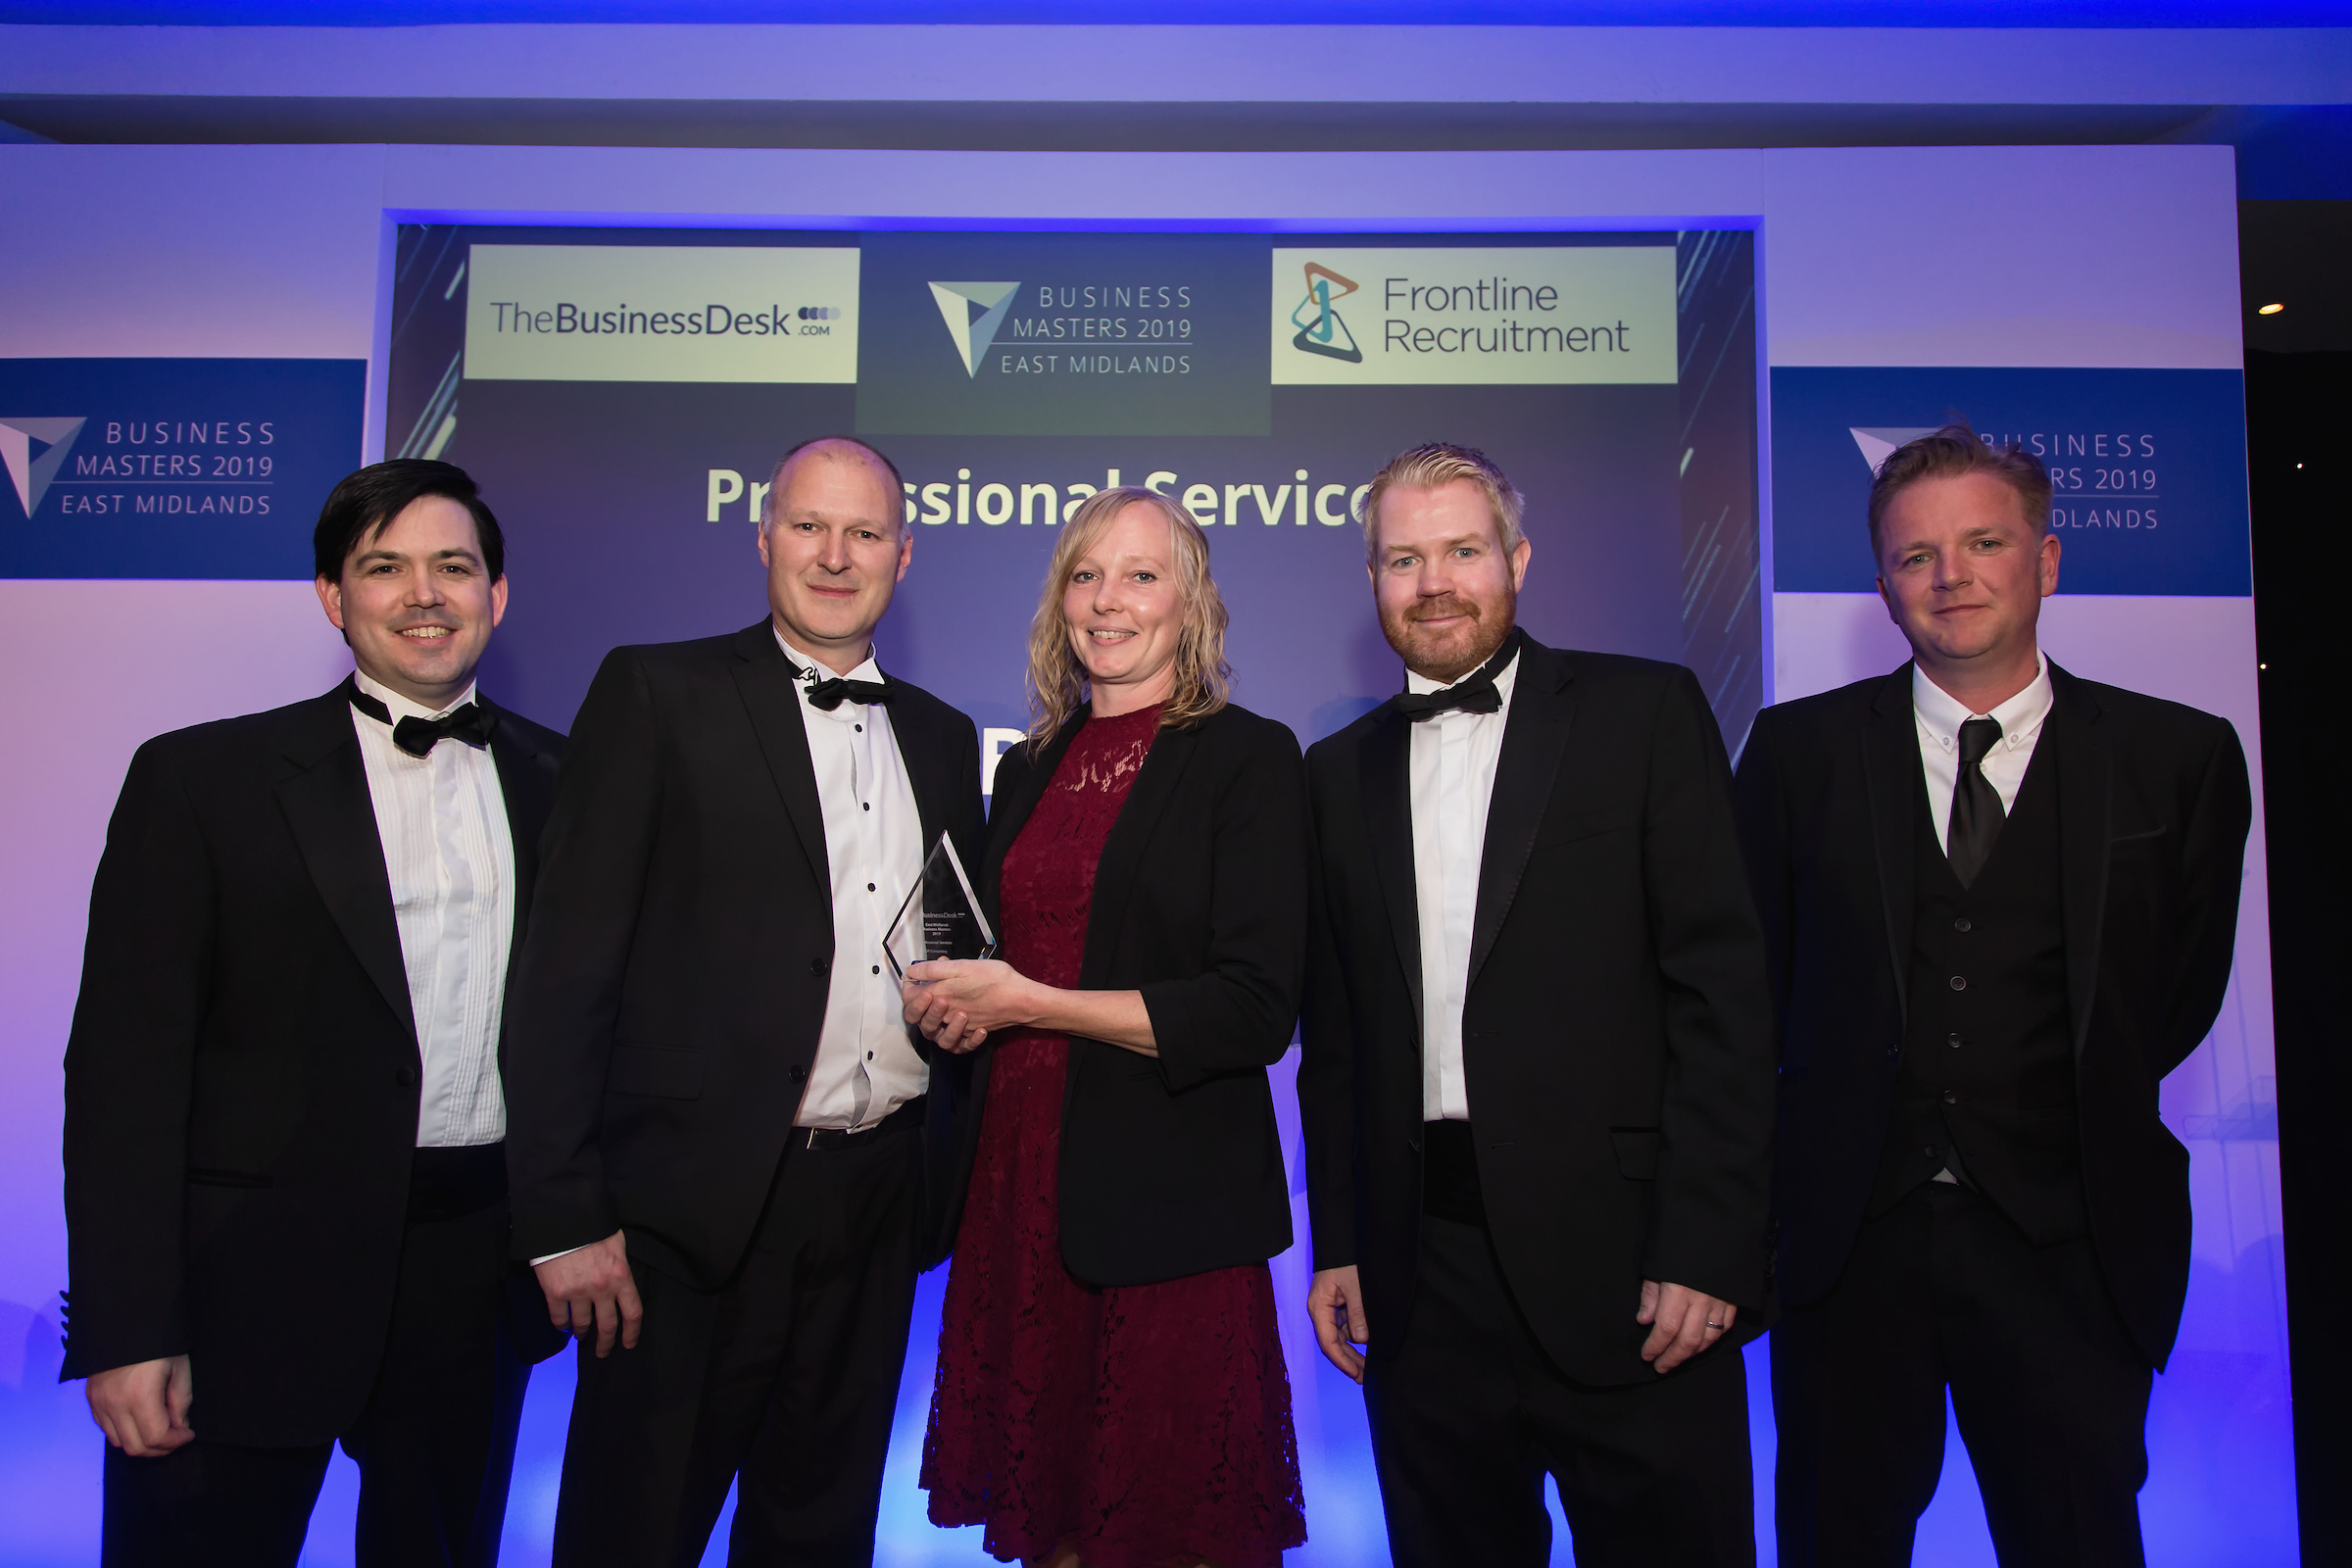 BSP_Consulting_wins_Professional_Services_Award_at_East_Midlands_Business_Masters_2019_-_larger_(1).jpg